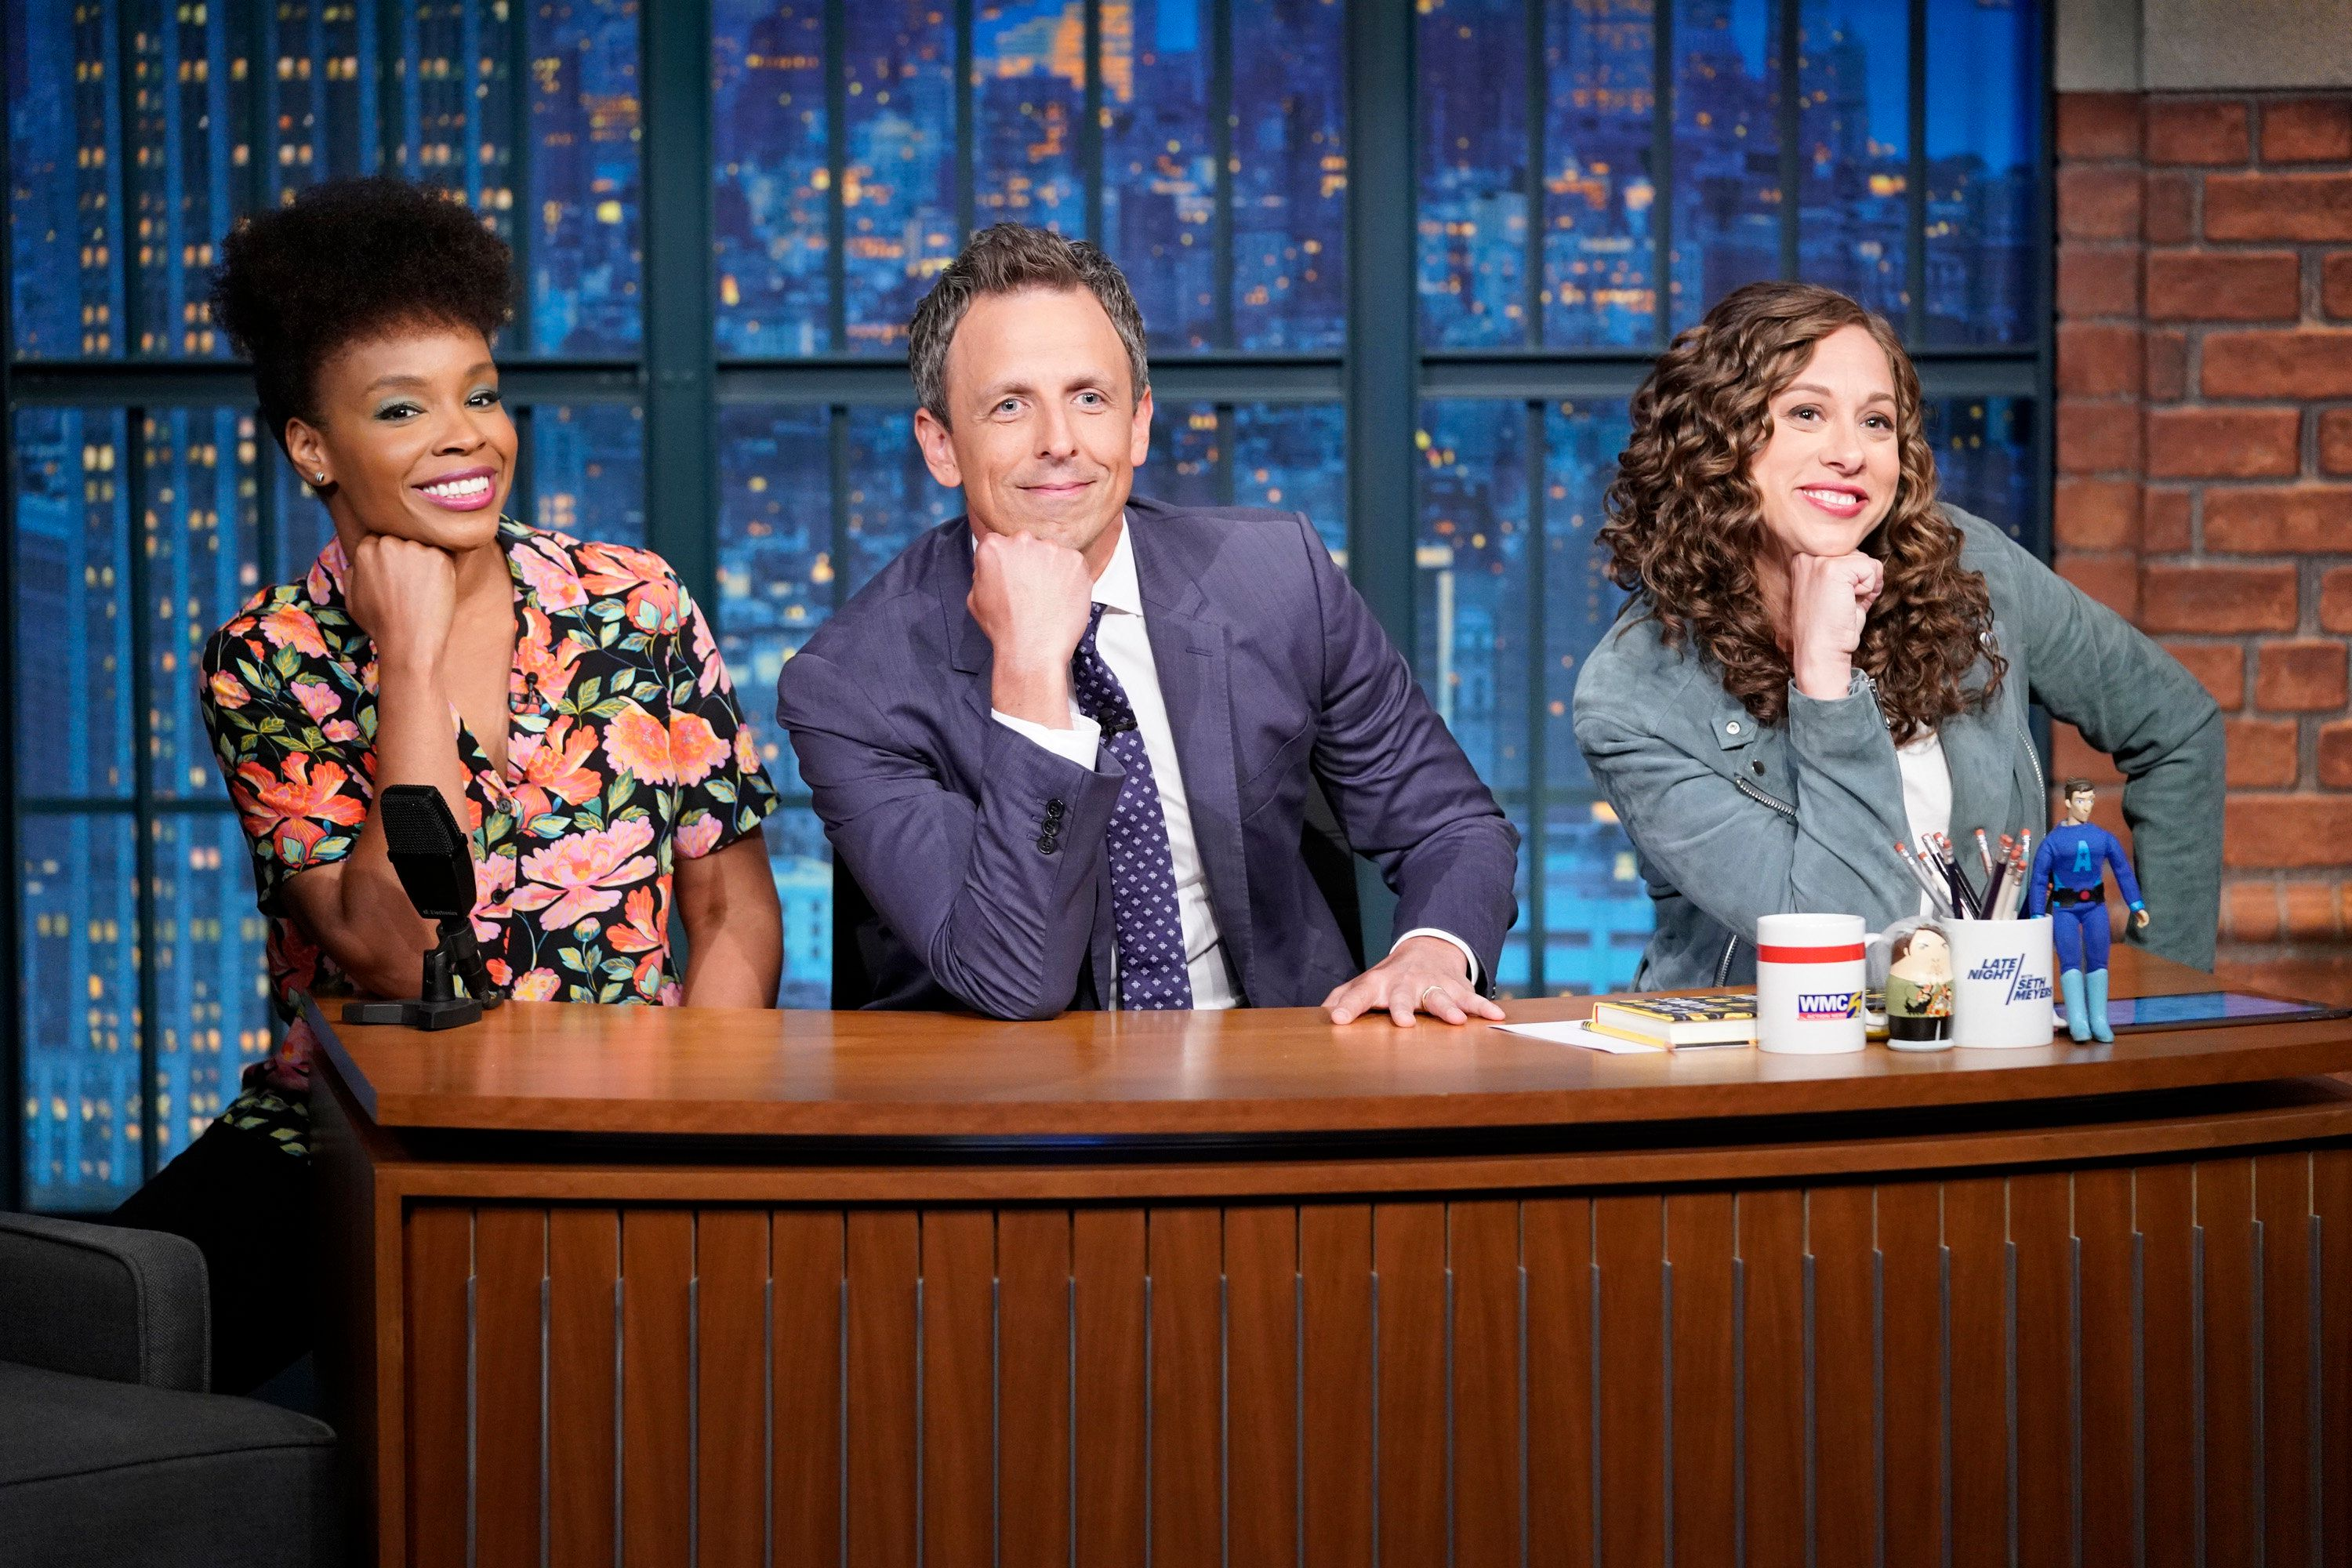 LATE NIGHT WITH SETH MEYERS -- Episode 715 -- Pictured: (l-r) Amber Ruffin, host Seth Meyers and Jenny Hagel during 'Jokes Seth Can't Tell' sketch on July 31, 2018 -- (Photo by: Lloyd Bishop/NBC/NBCU Photo Bank via Getty Images)